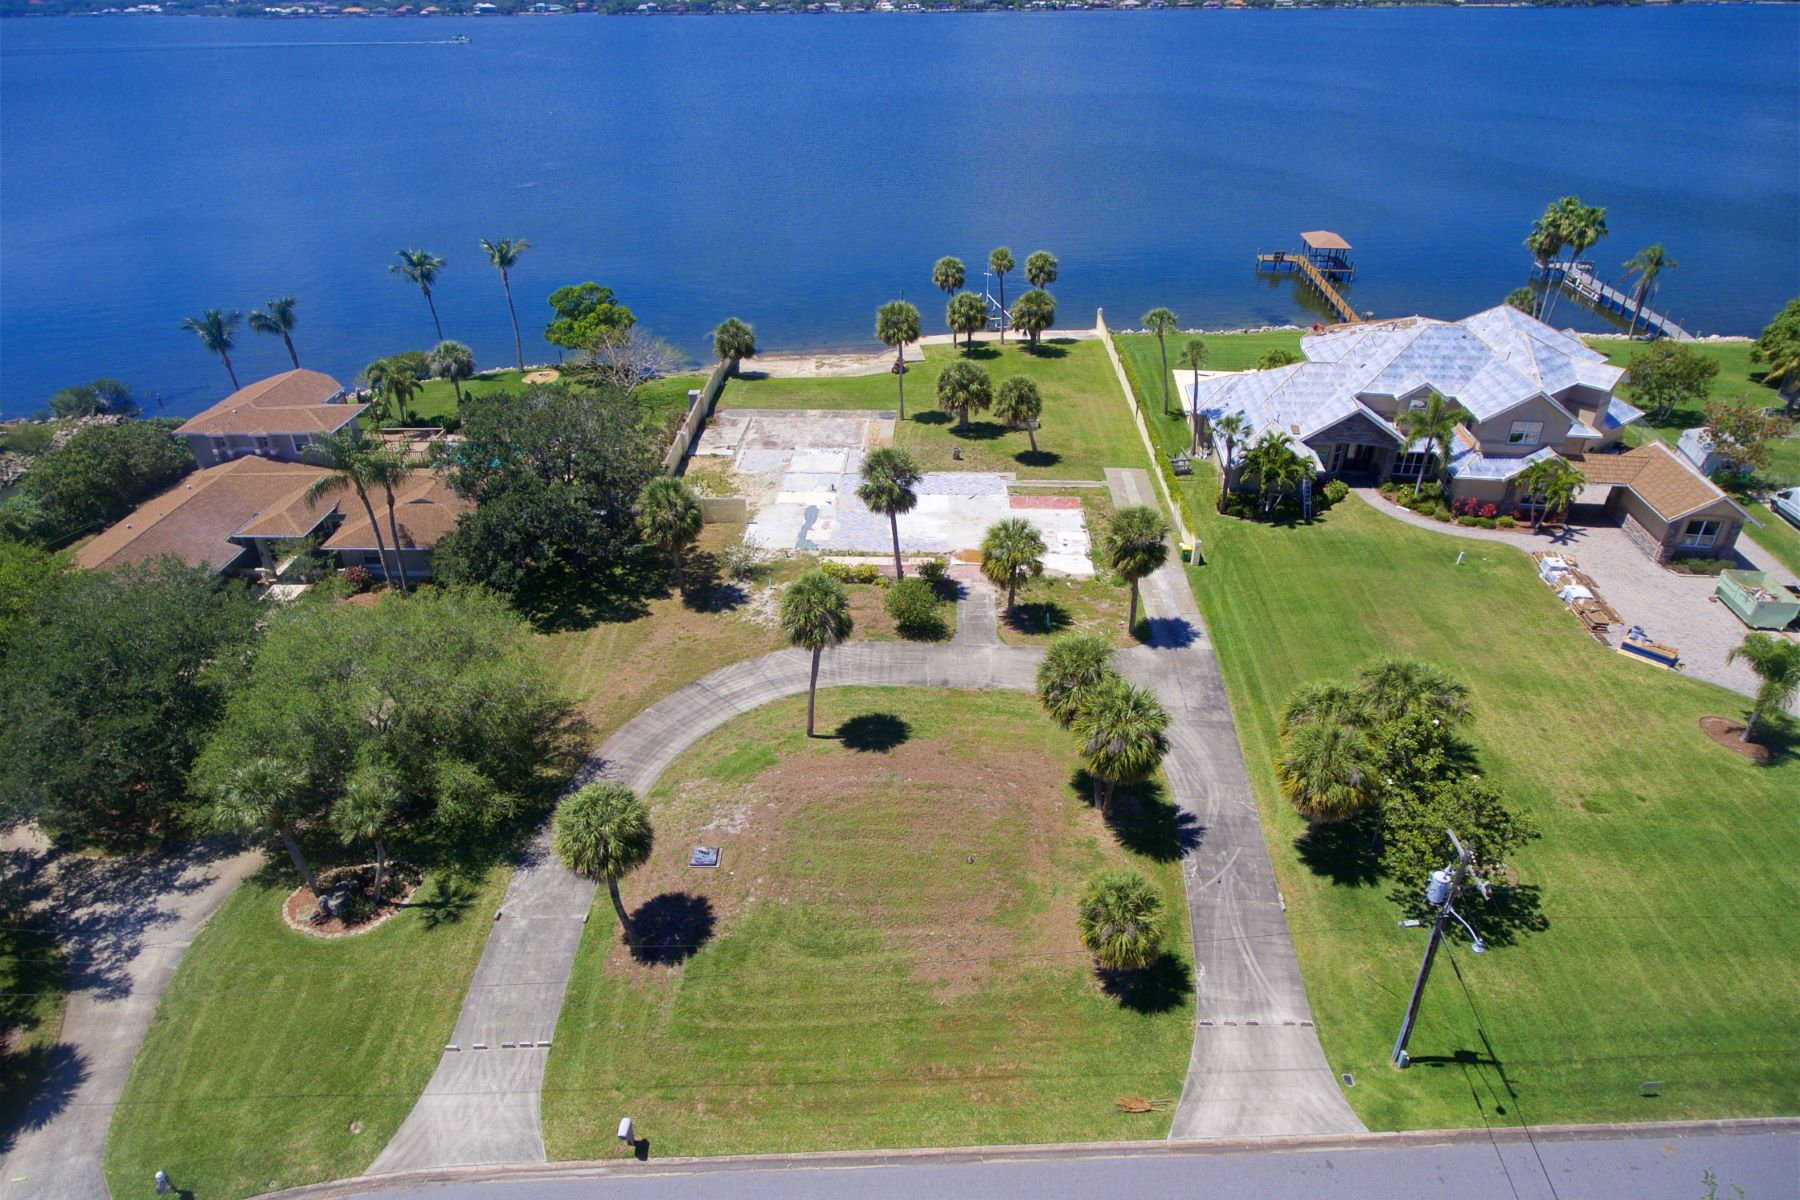 Οικόπεδο για την Πώληση στο Premium Waterfront Homesite in Convenient and Manicured Tequesta Harbor 196 Tequesta Harbor Drive Merritt Island, Φλοριντα 32952 Ηνωμένες Πολιτείες